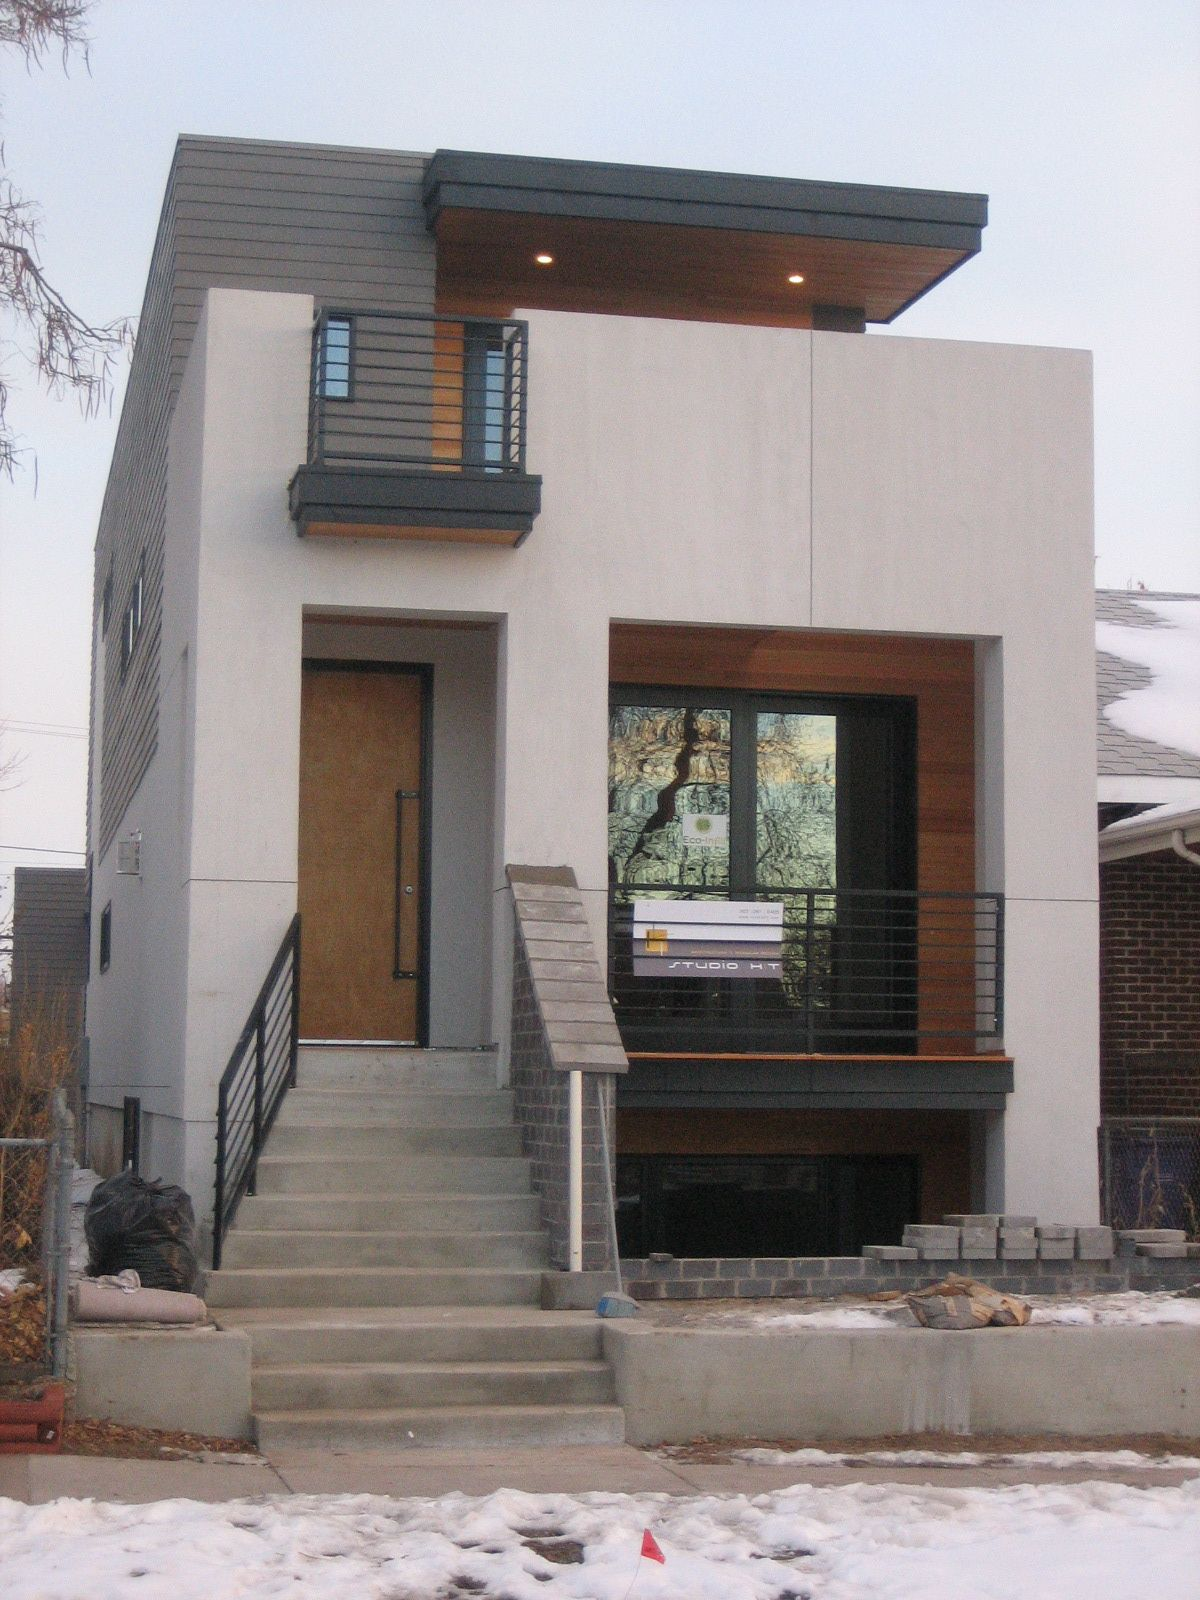 The Astounding Modern Prefab House Design Awesome Small Prefabricated Homes With Simple Balcony Digital Imagery Above Is One Of Among